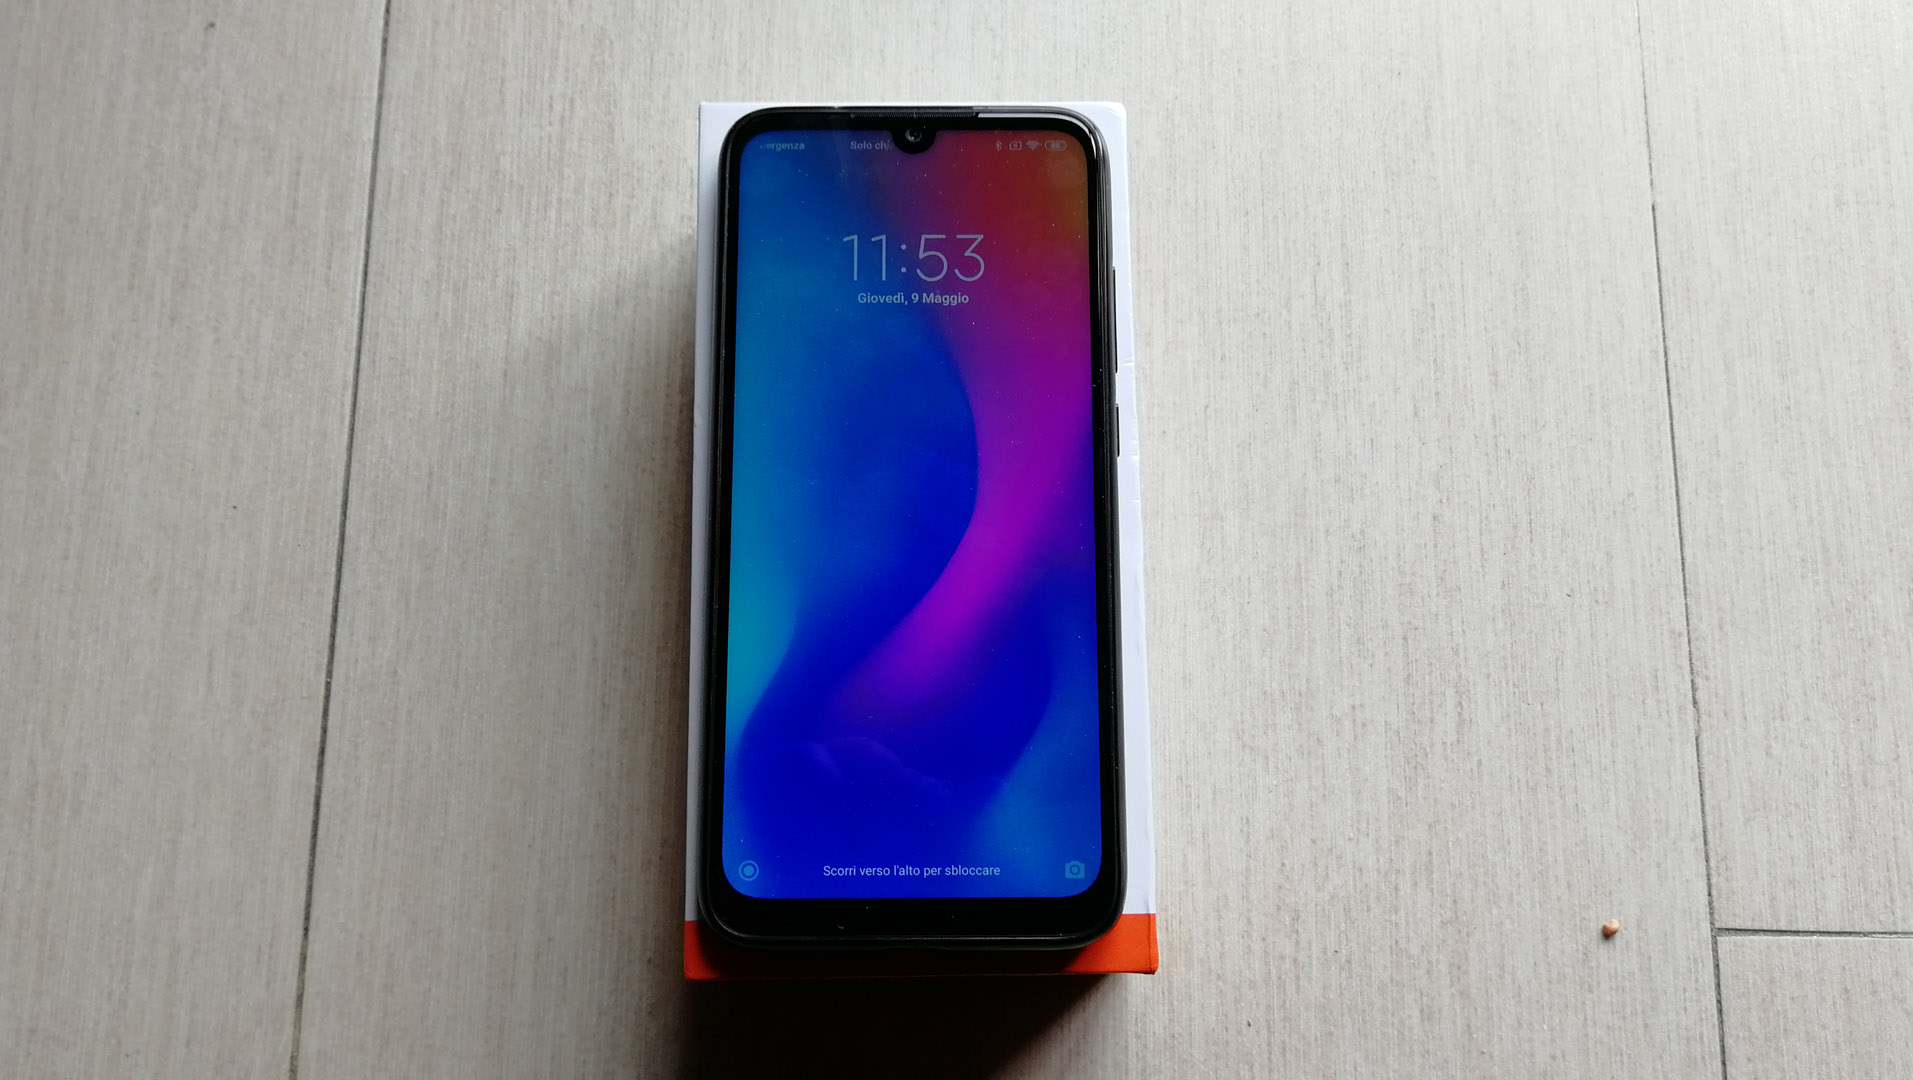 Redmi note 7 Display acceso